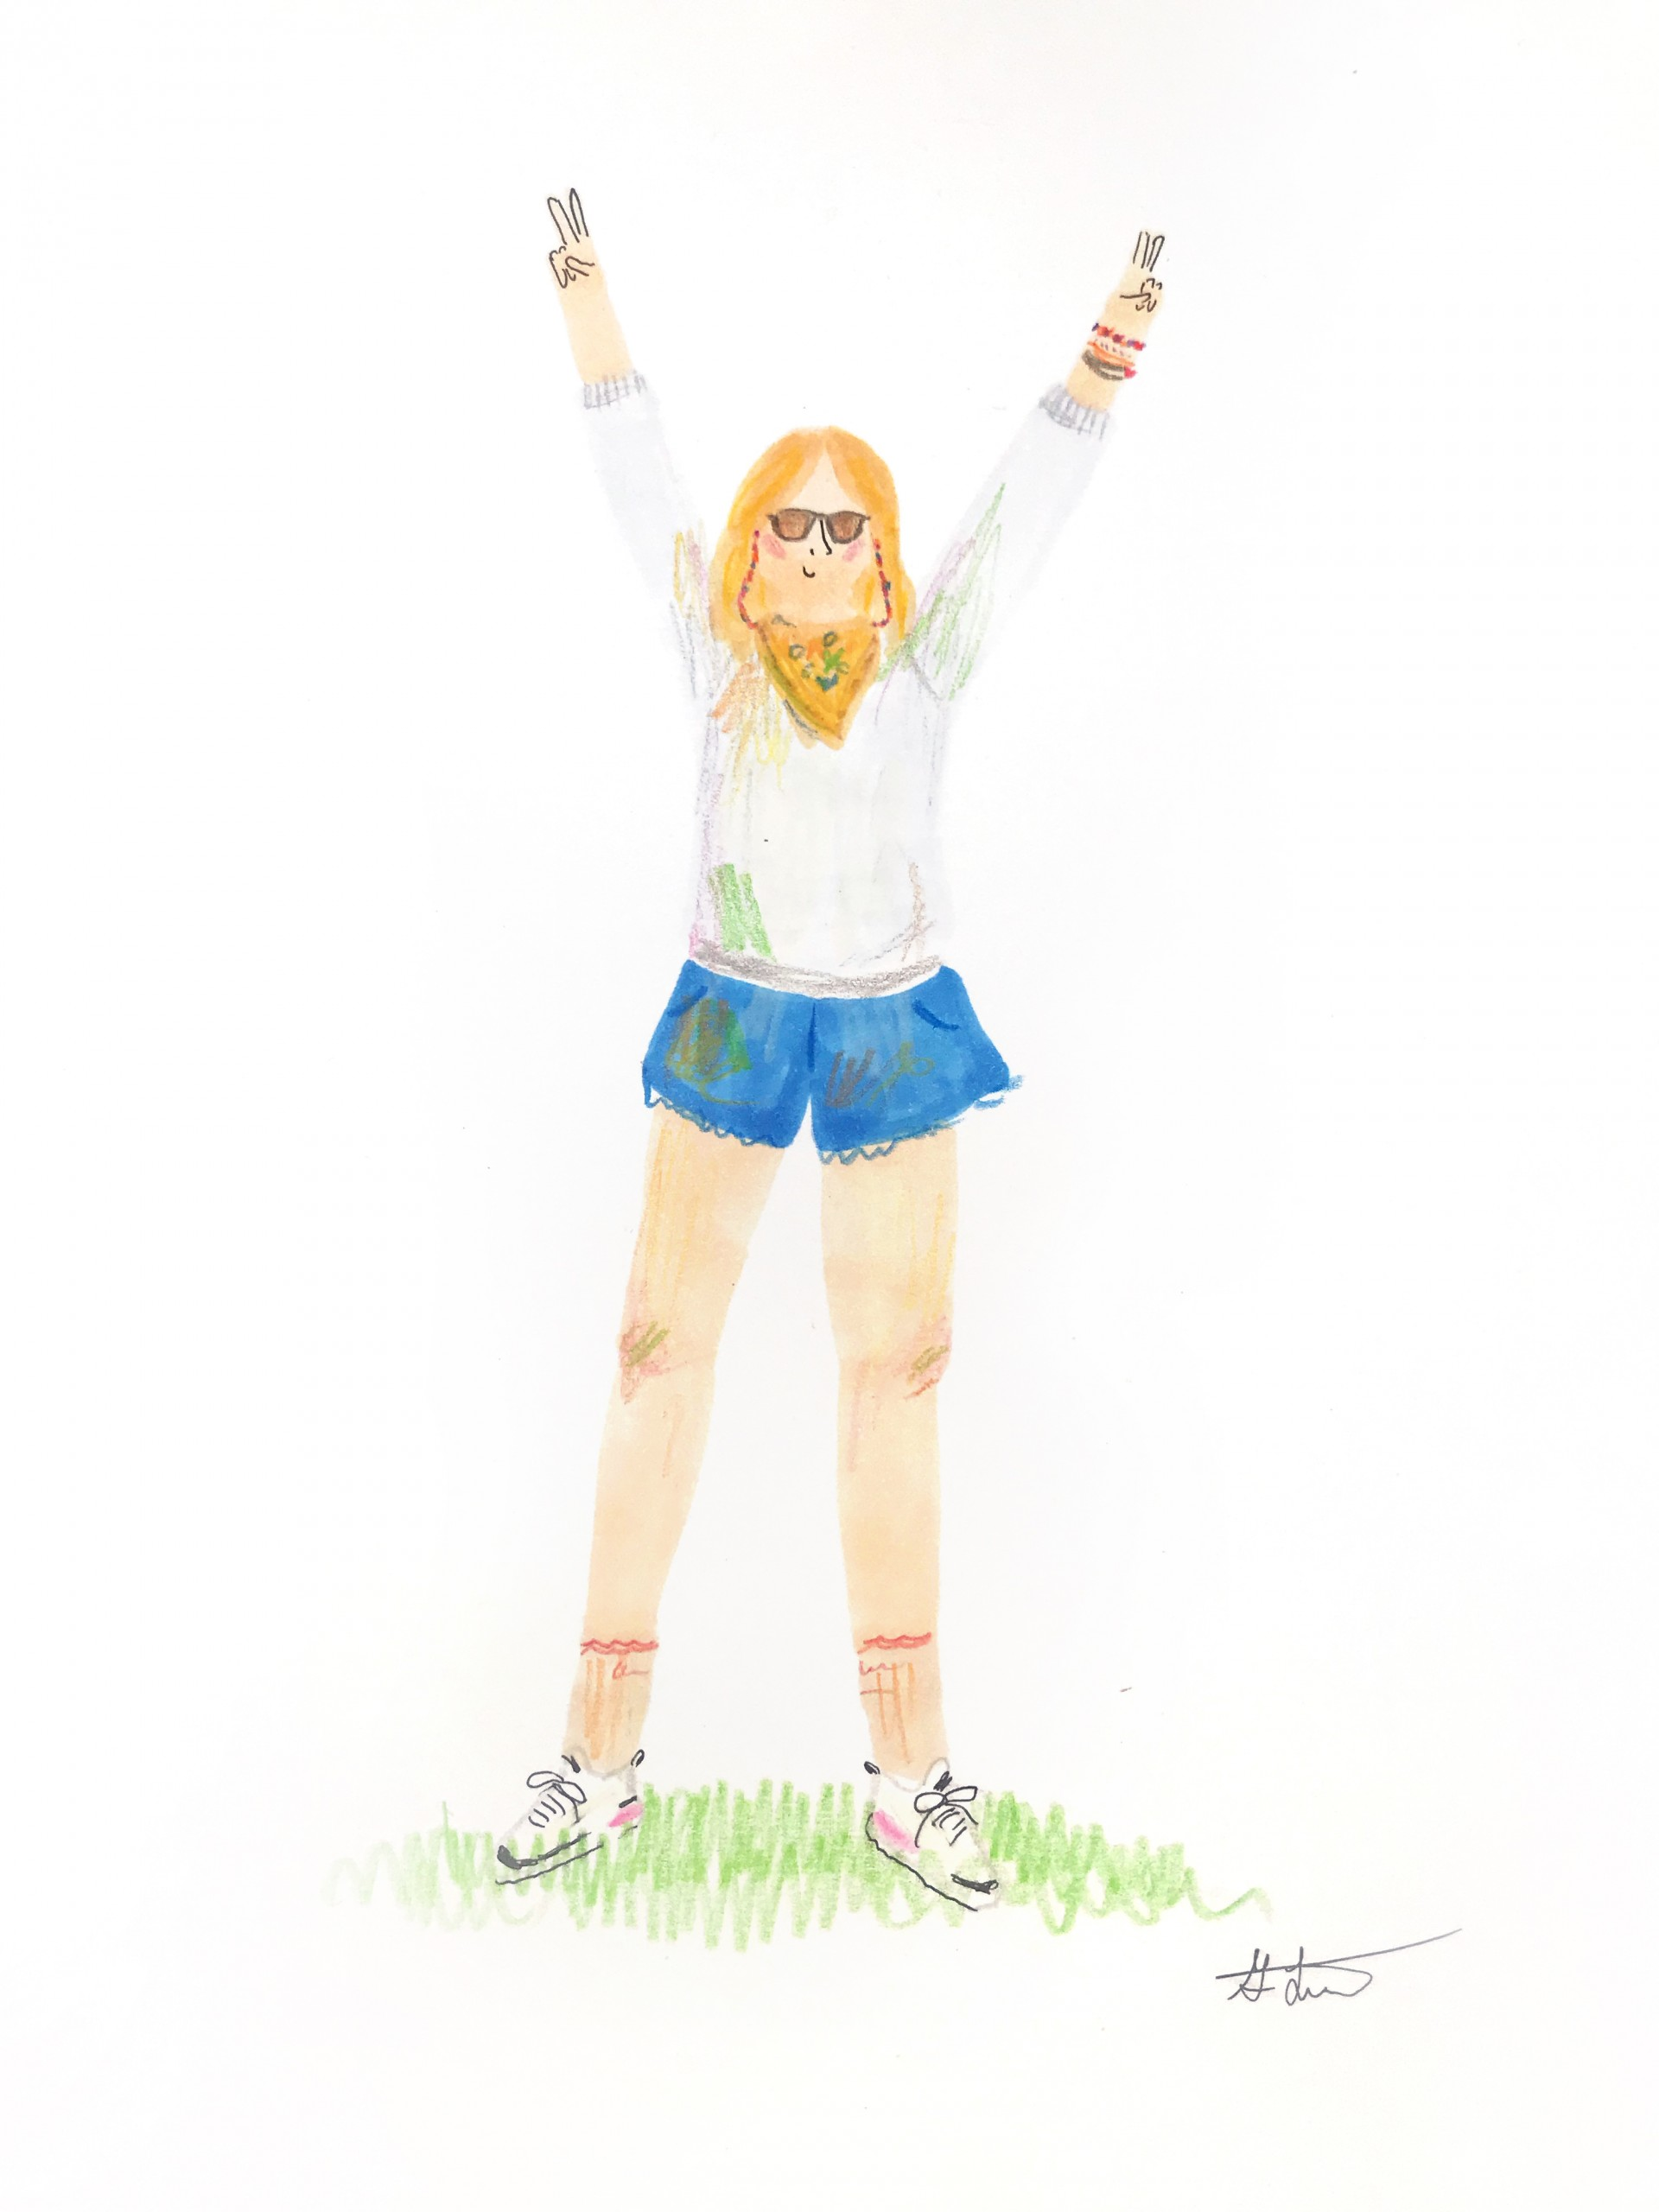 Full body drawing of girl with jean shorts, yellow bandana around neck, sunglasses. Both hands are above head in peace signs.